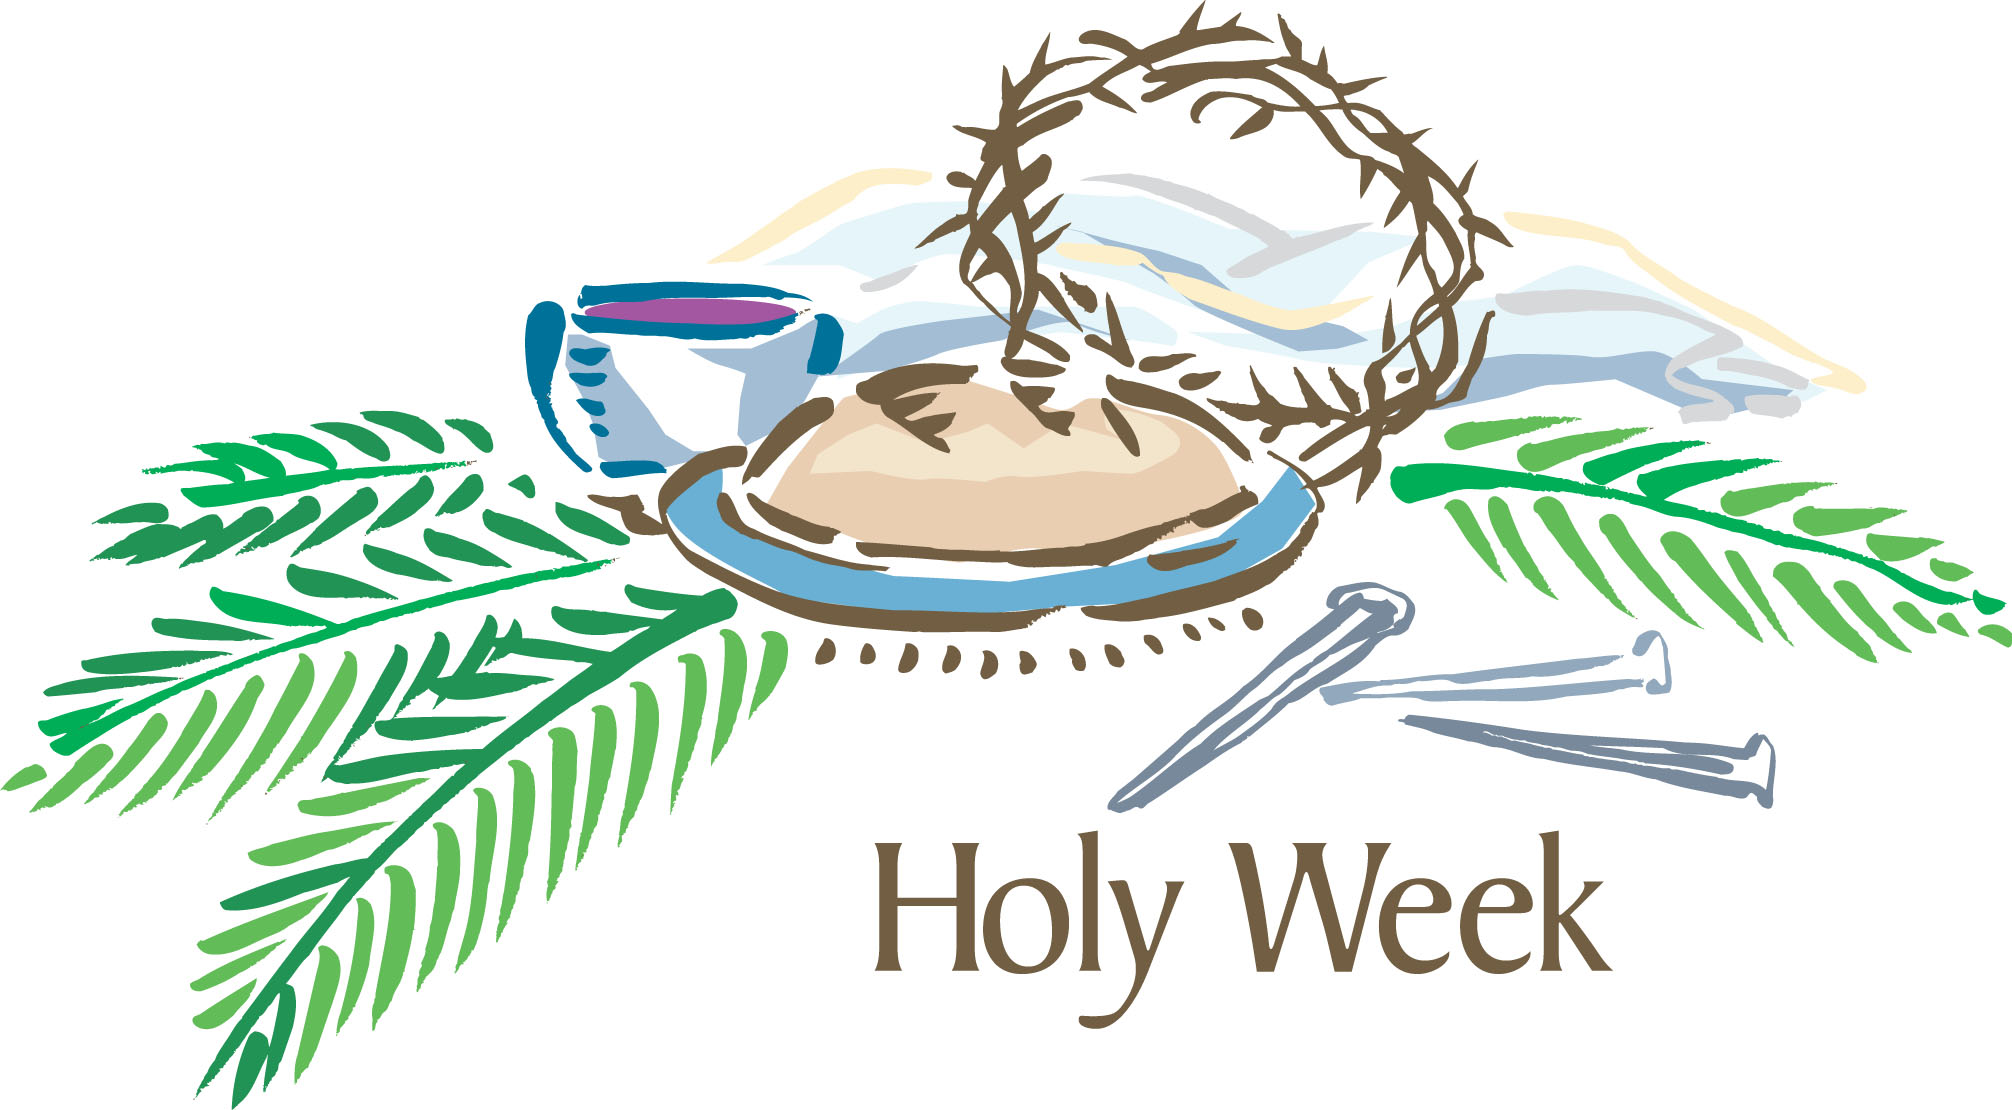 Holy week free clipart clip free library Free Pray Clipart holy week, Download Free Clip Art on Owips.com clip free library